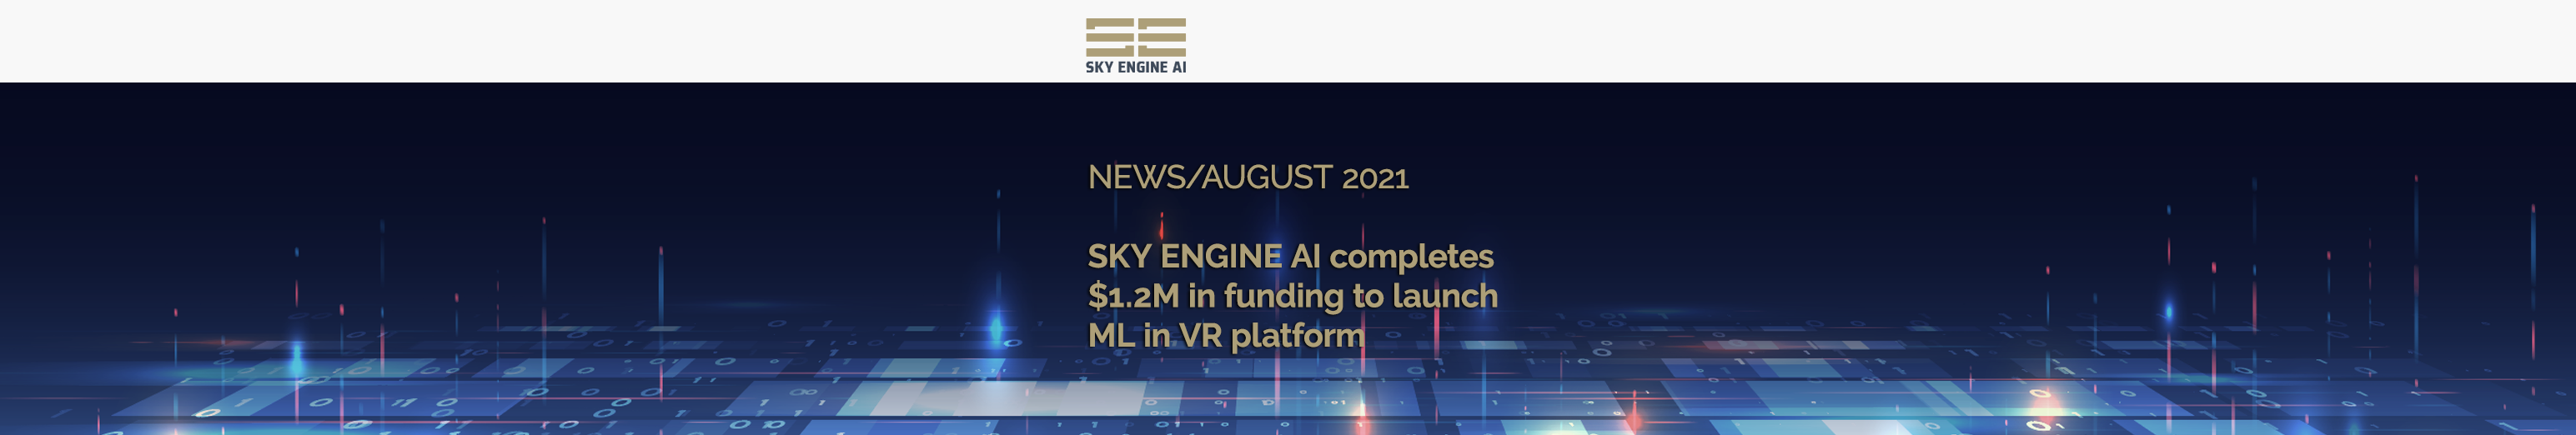 SKY ENGINE AI completes $1.2M in funding to launch Machine Learning in Virtual Reality platform